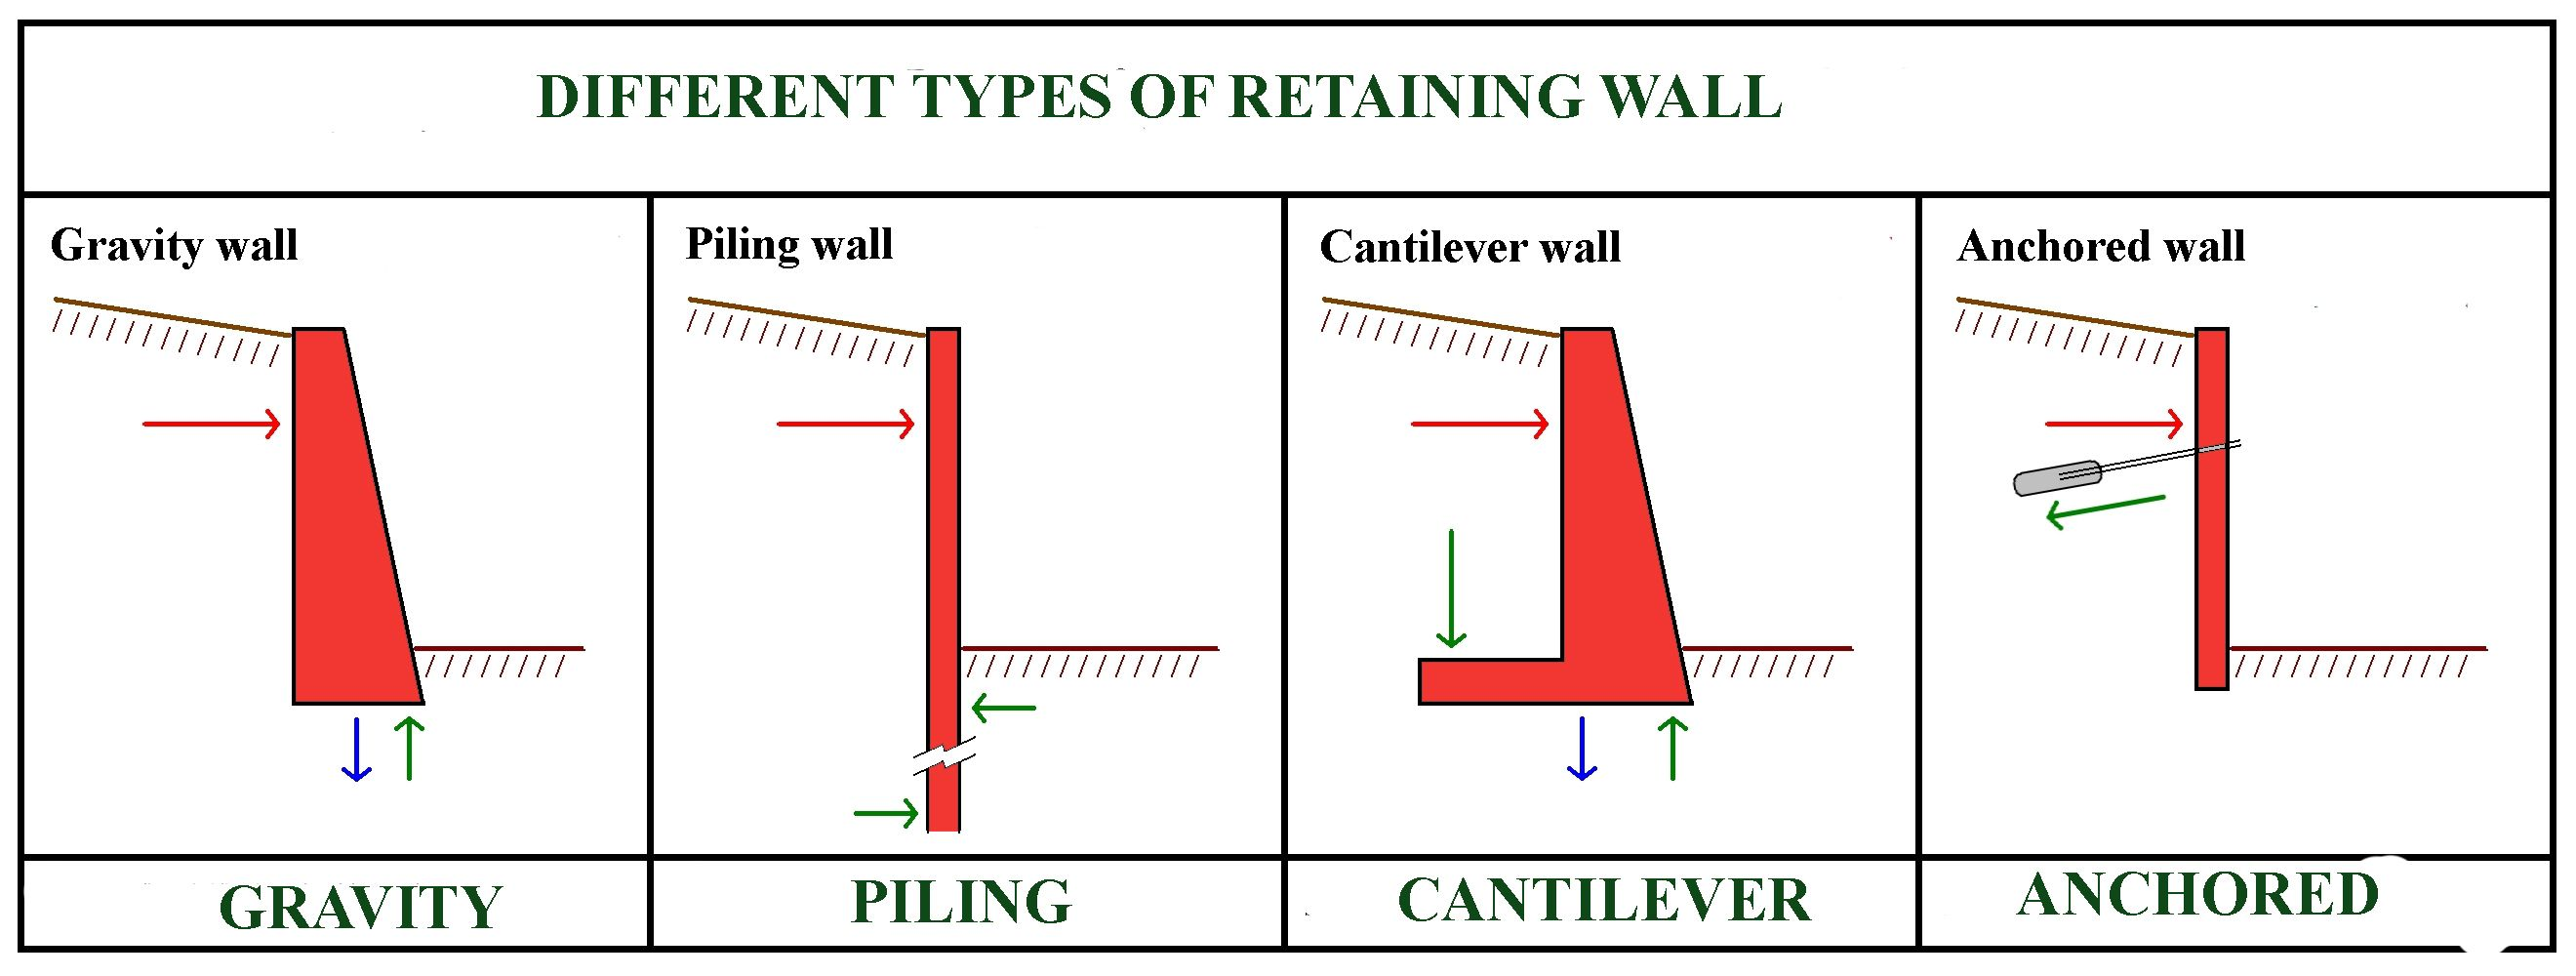 tire retaining wall google search lawnhouse pinterest retaining walls google and search